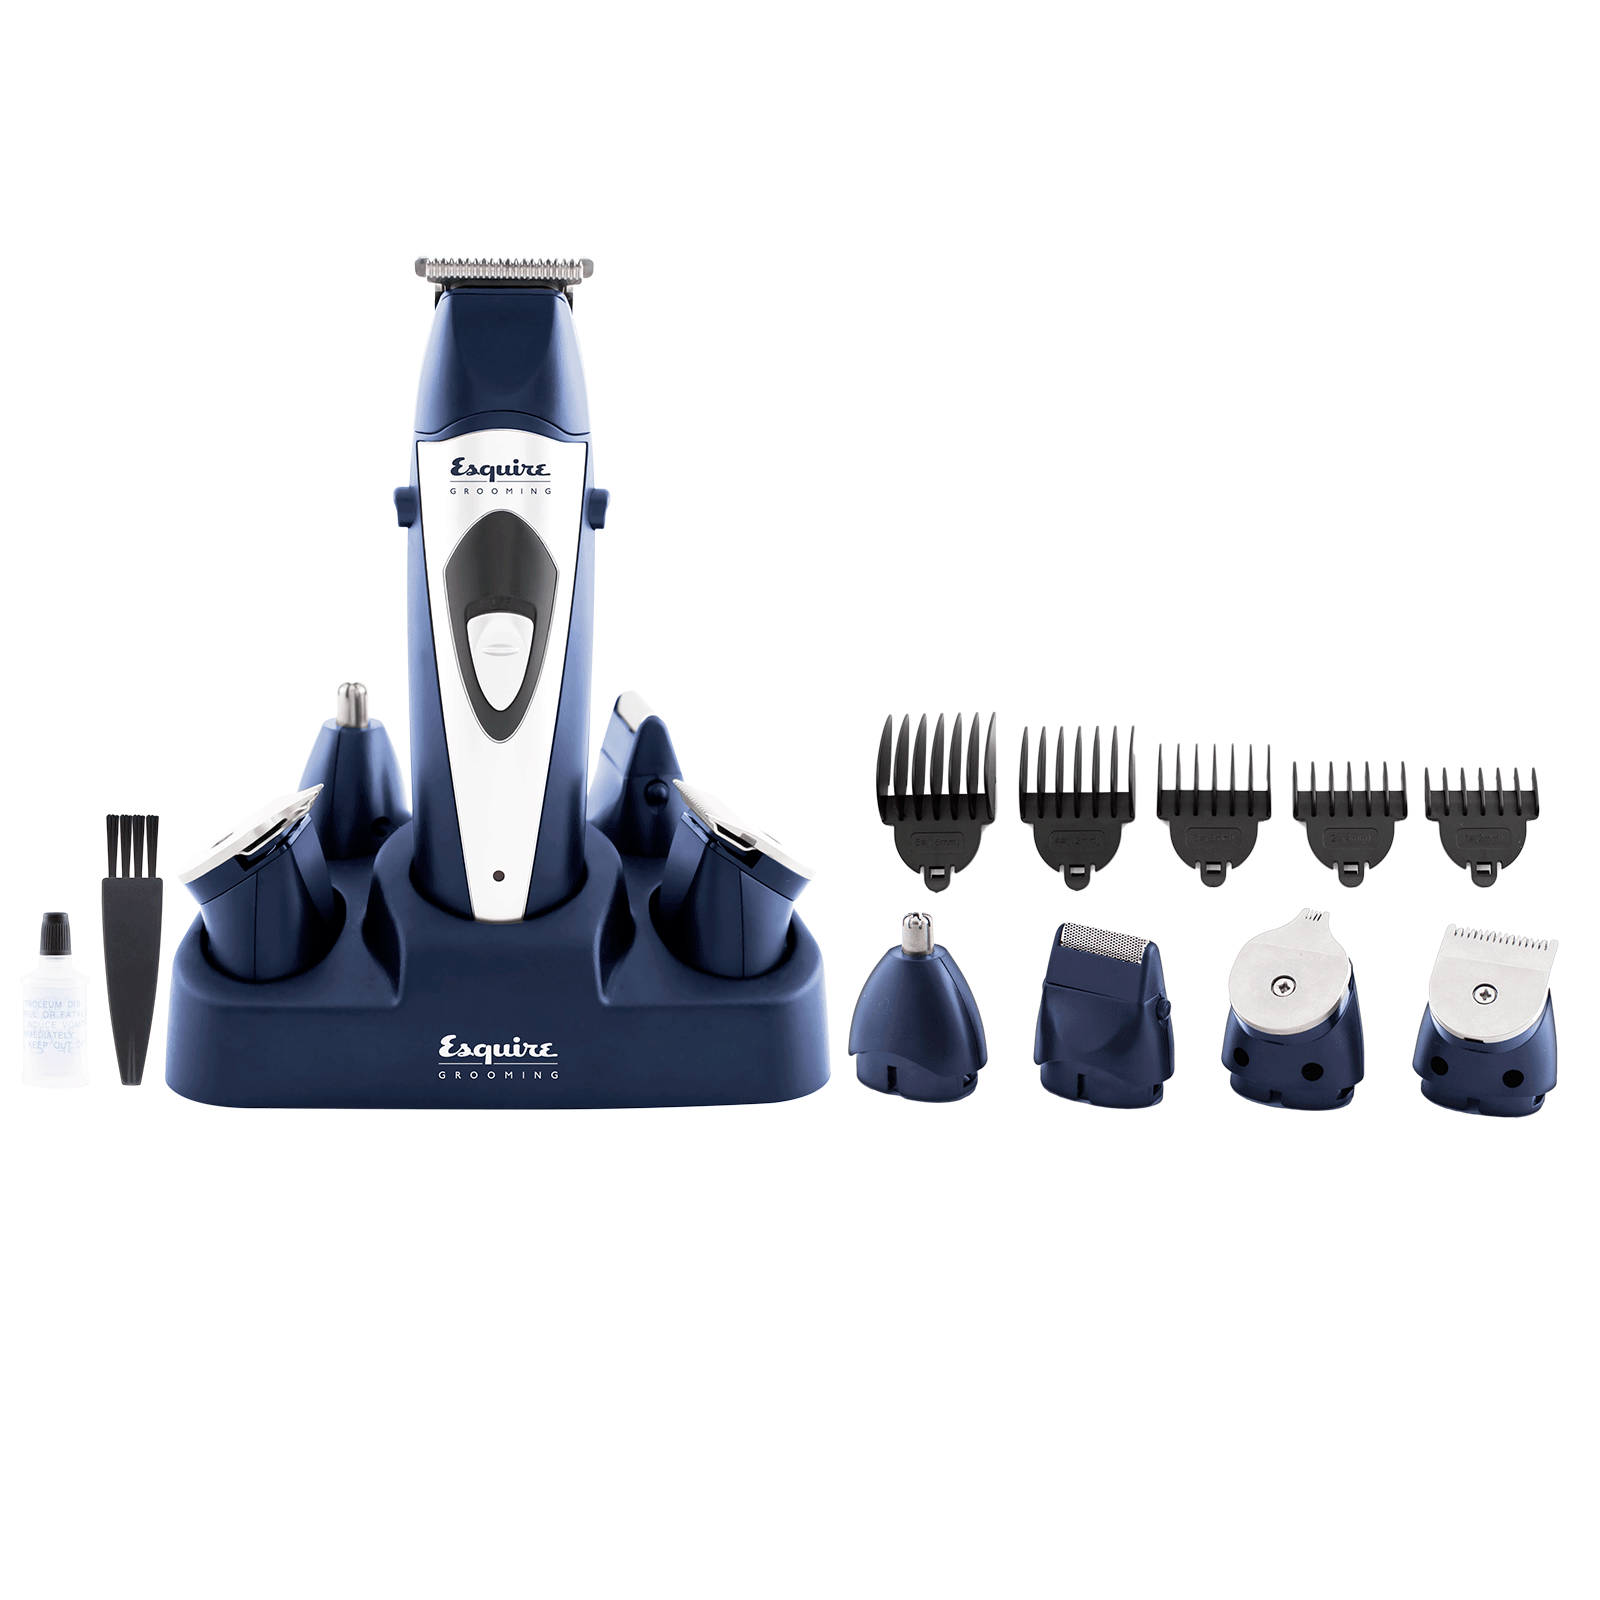 Esquire Trimmer/Grooming Set - 5 piece